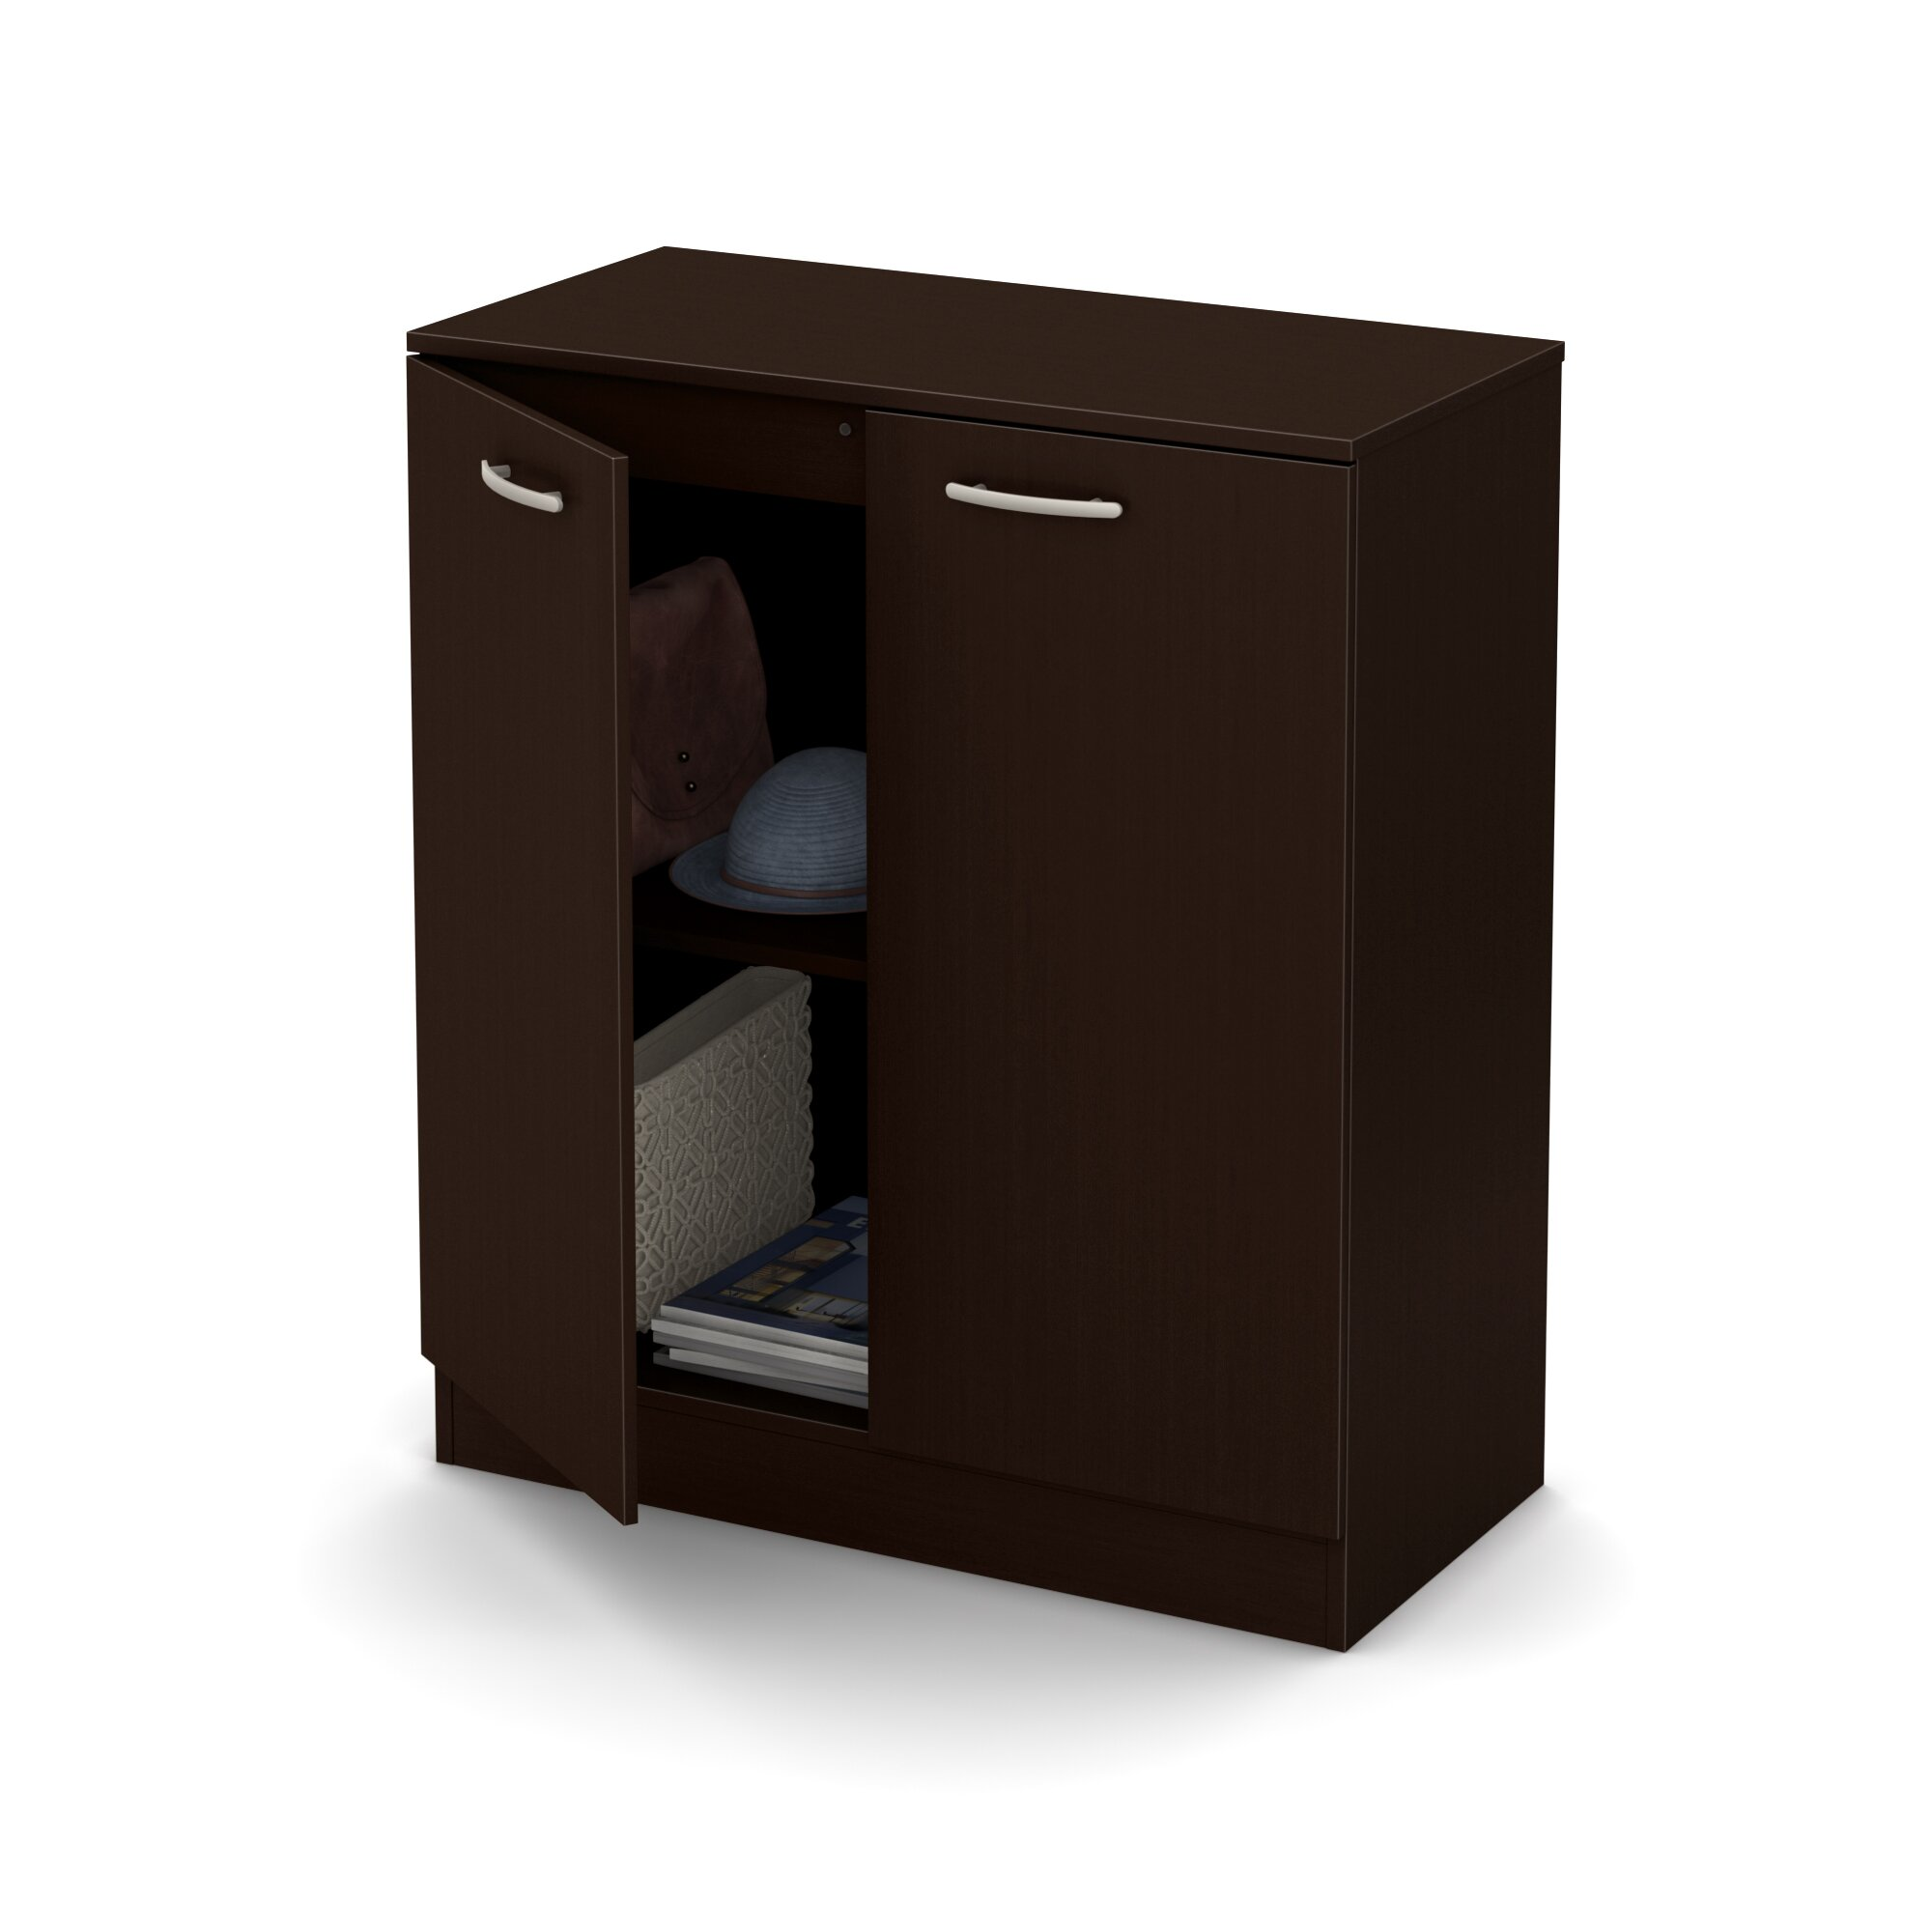 South shore axess 2 door accent cabinet reviews wayfair for Cabinets 101